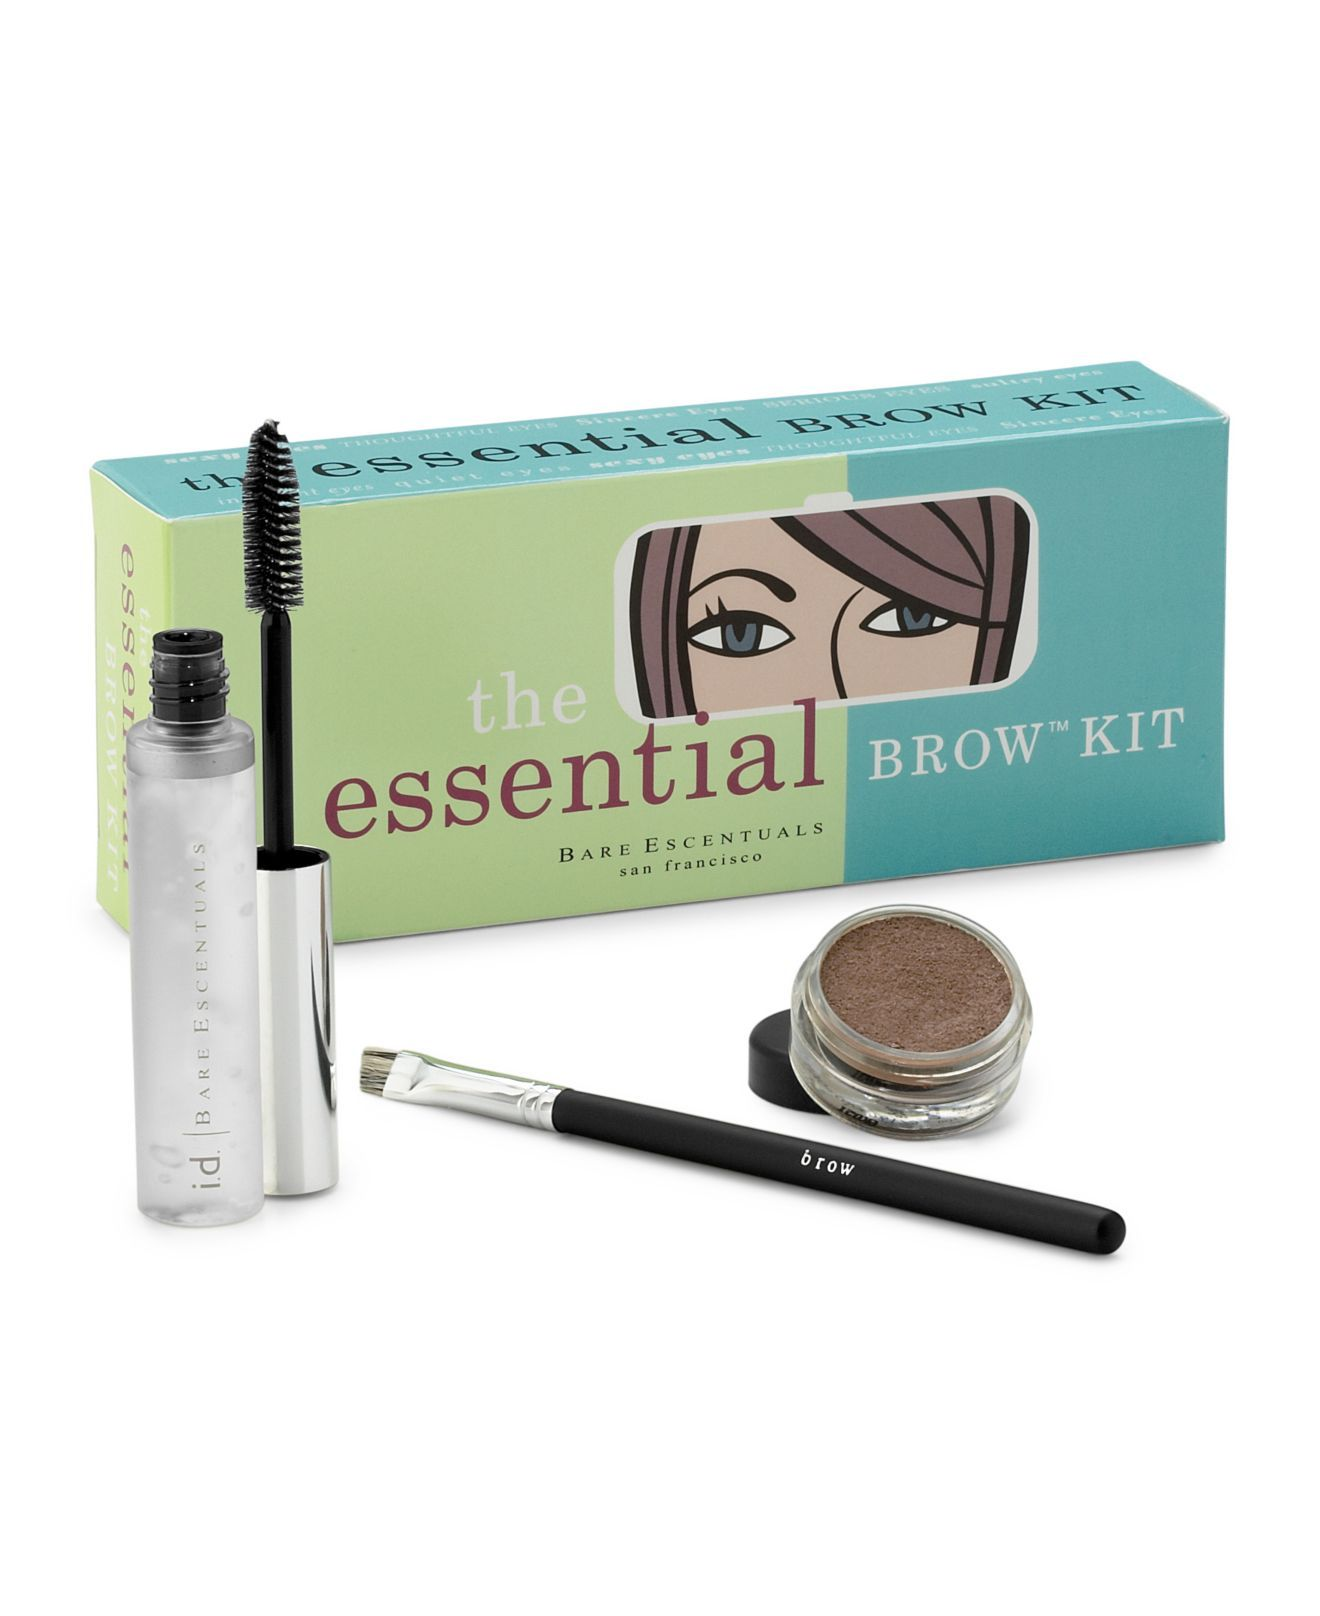 Bare Escentuals Bareminerals Brow Kit Makeup Beauty Macys